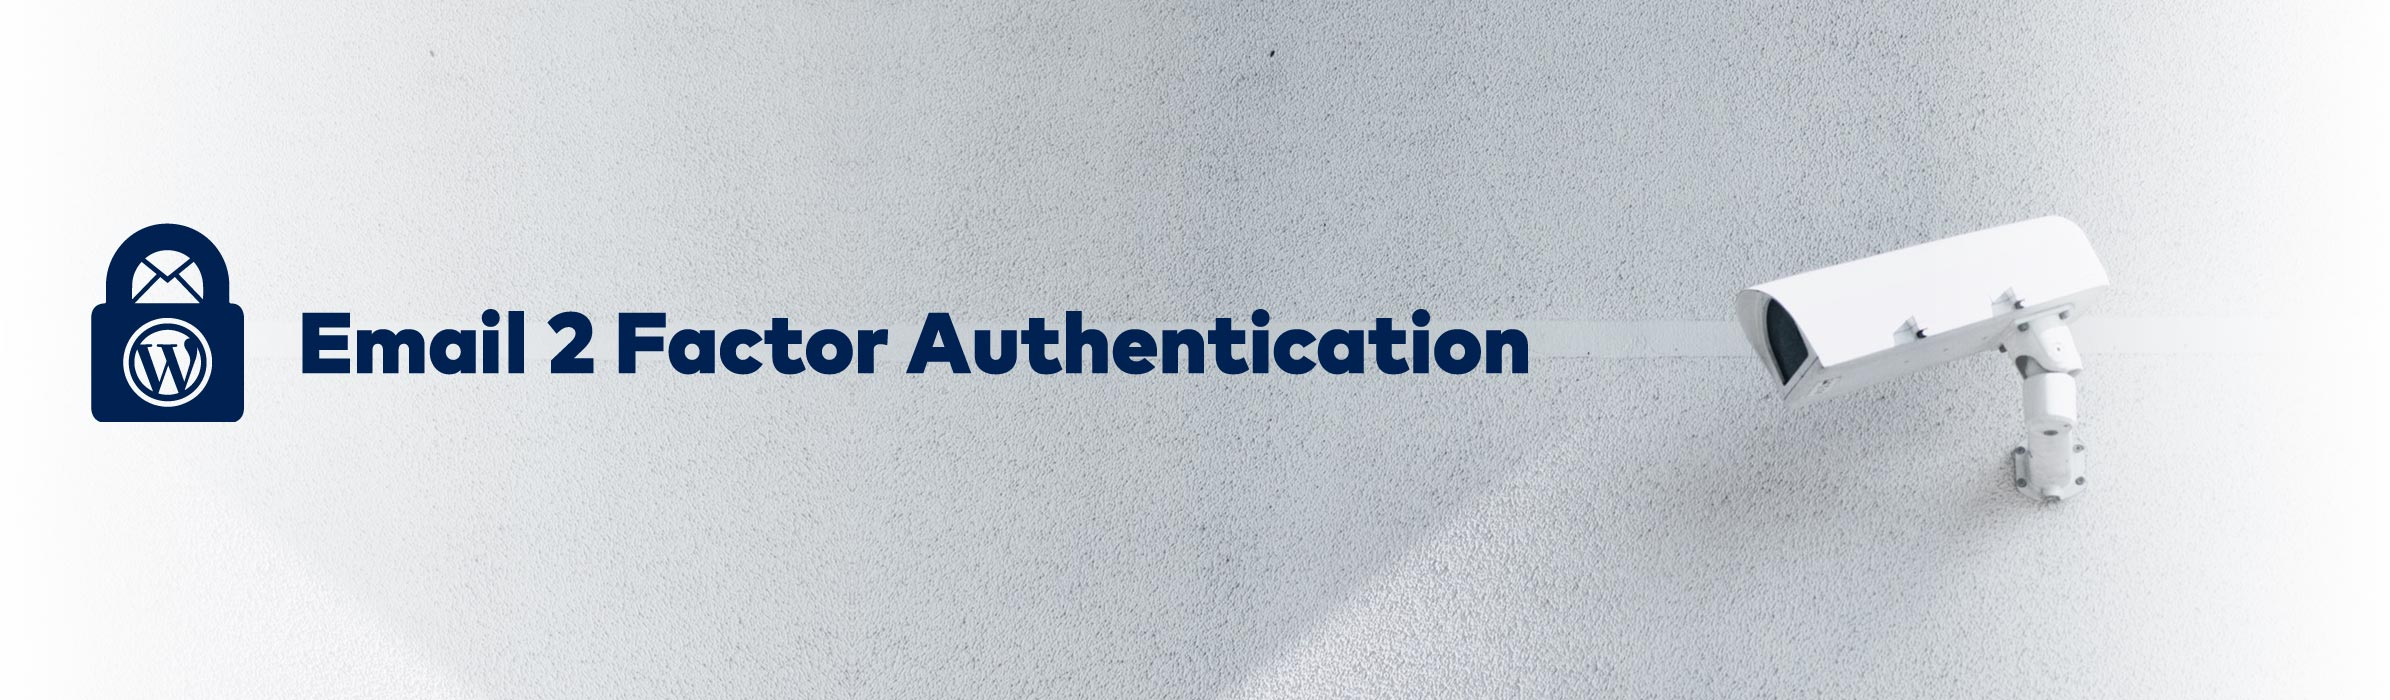 Email 2 Factor Authentication WordPress Banner